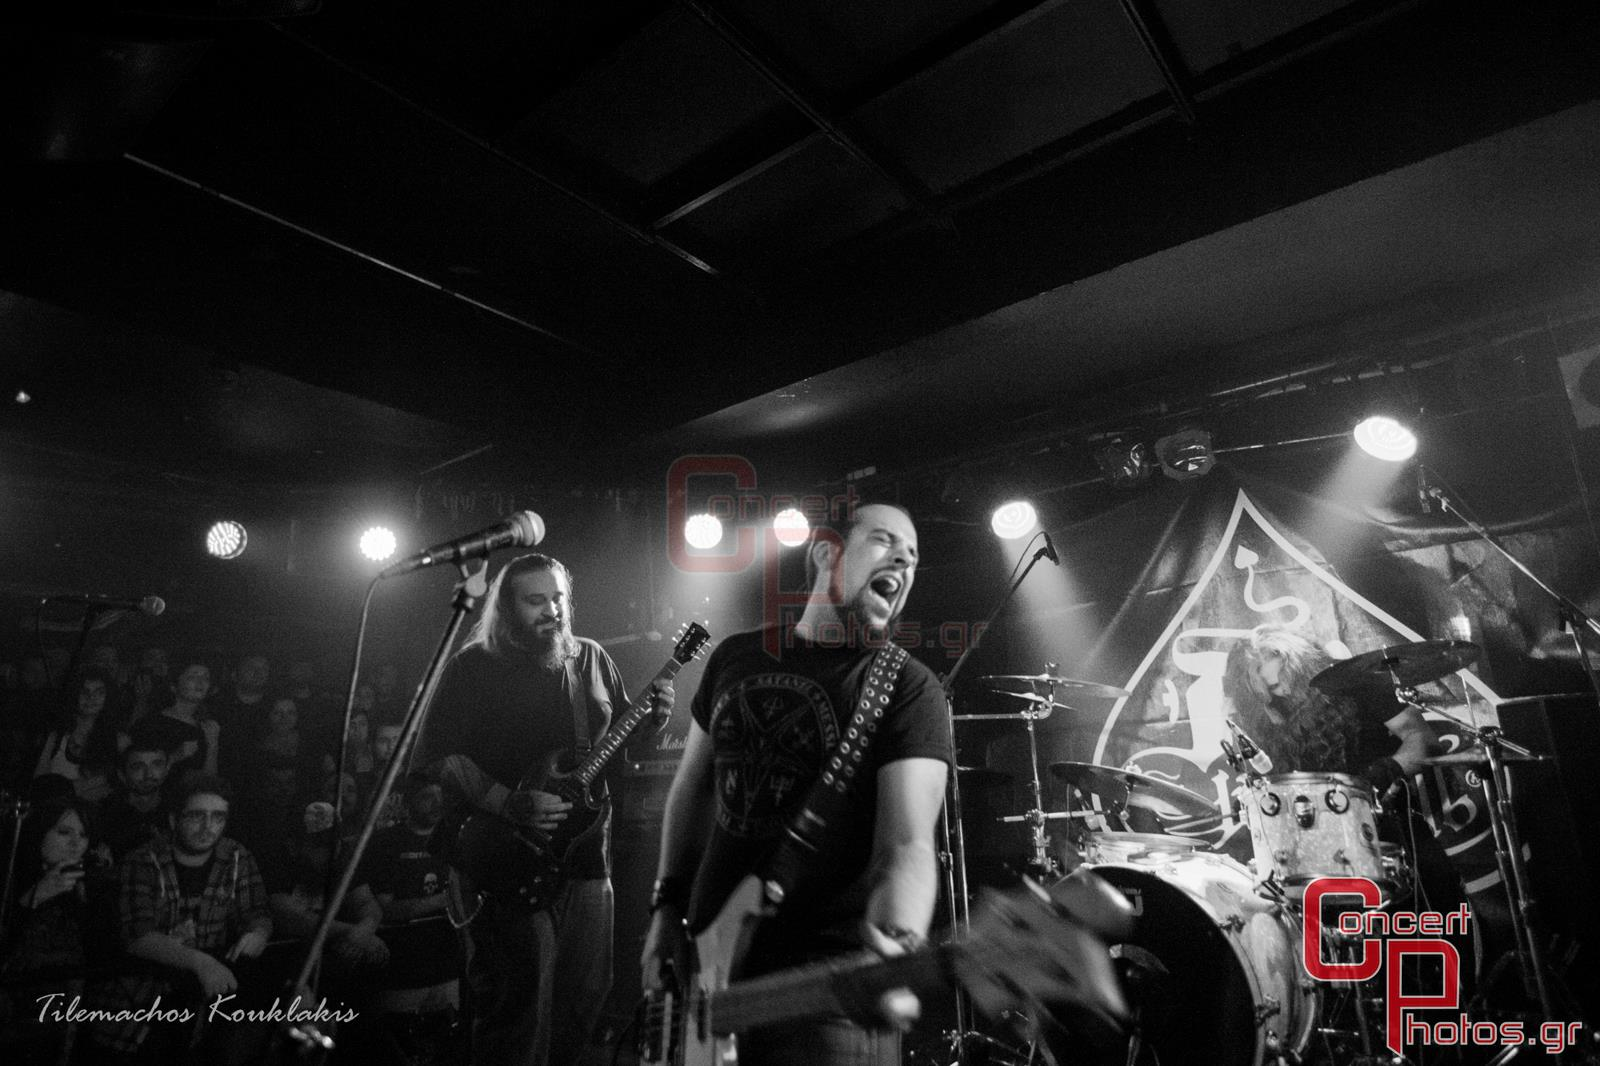 Nightstalker-Nightstalker AN Club photographer:  - concertphotos_-21